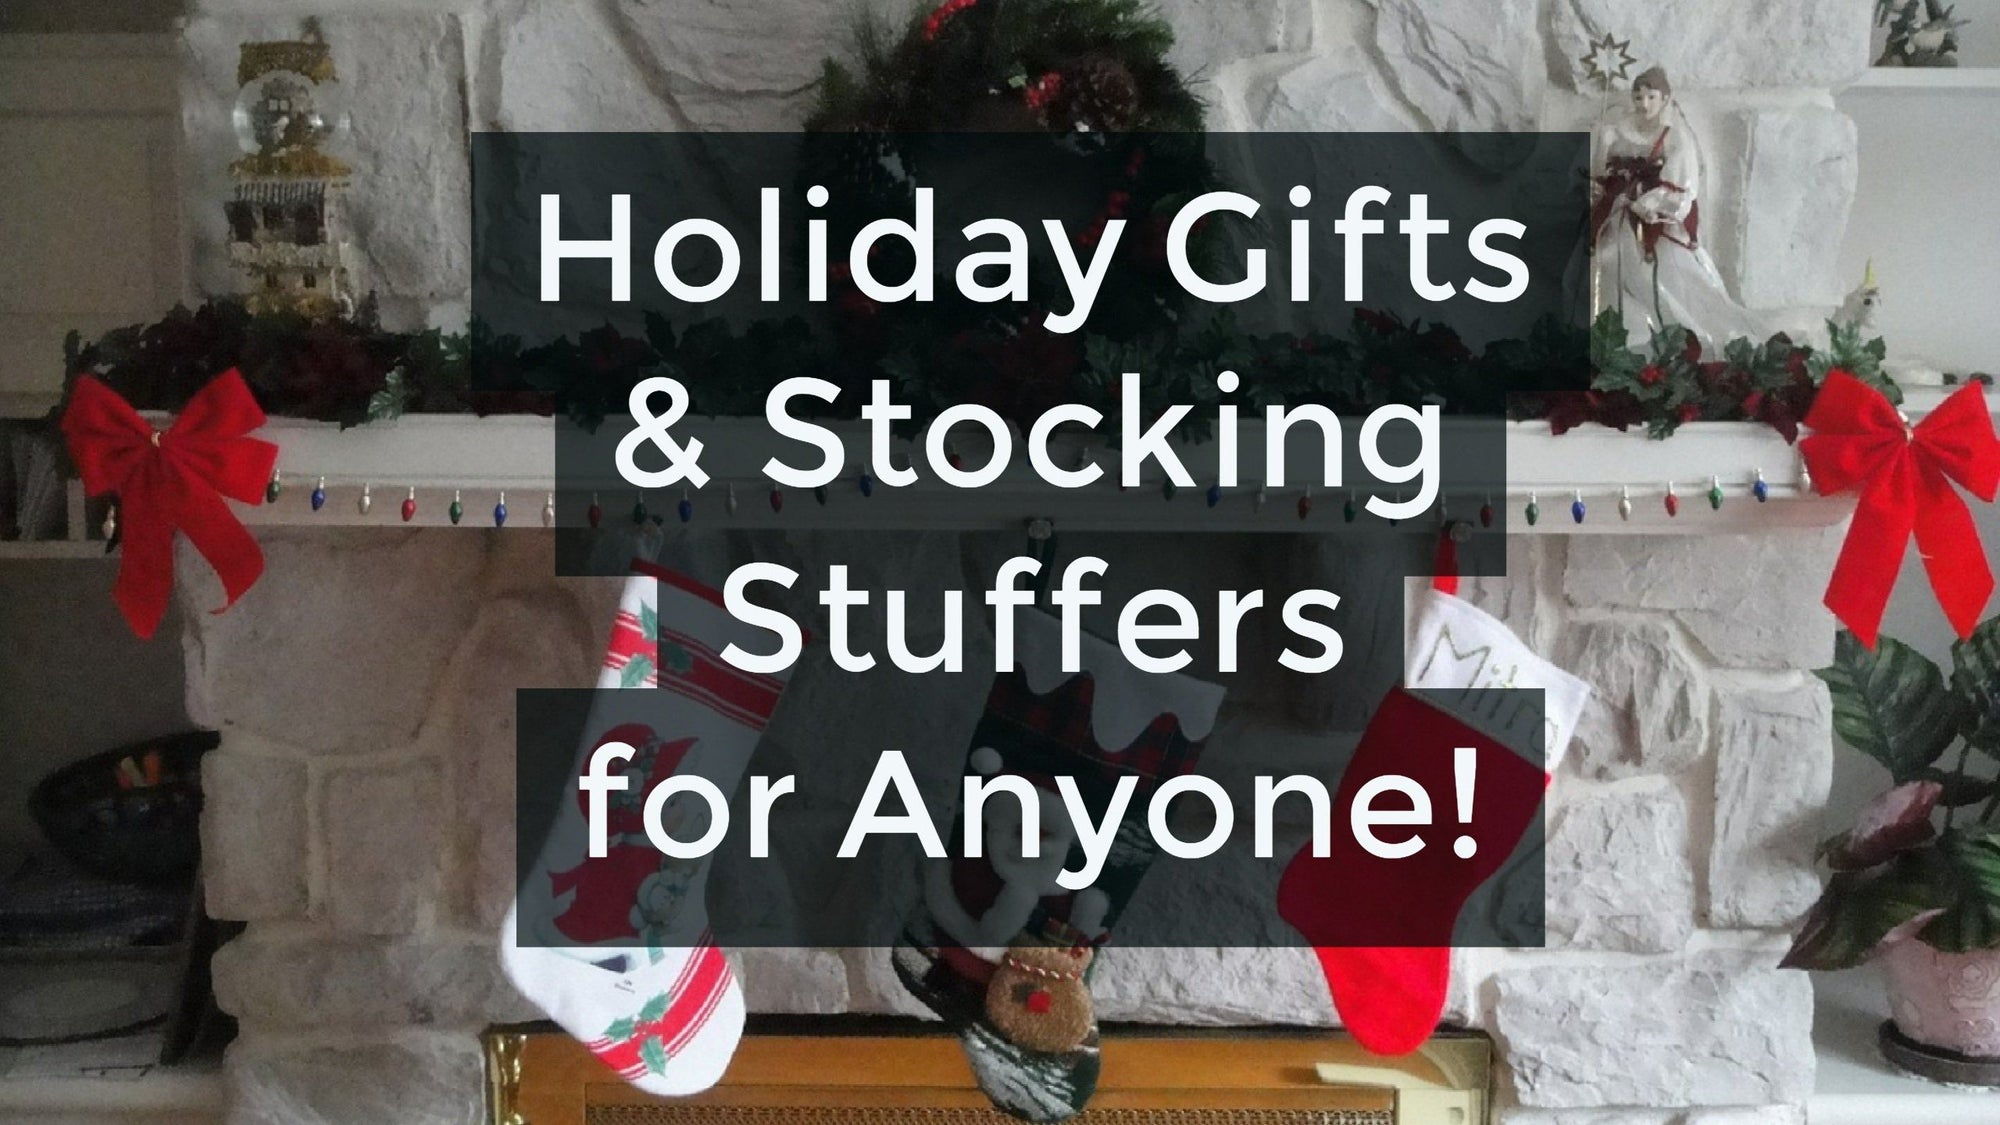 Holiday Gifts & Stocking Stuffers for Anyone